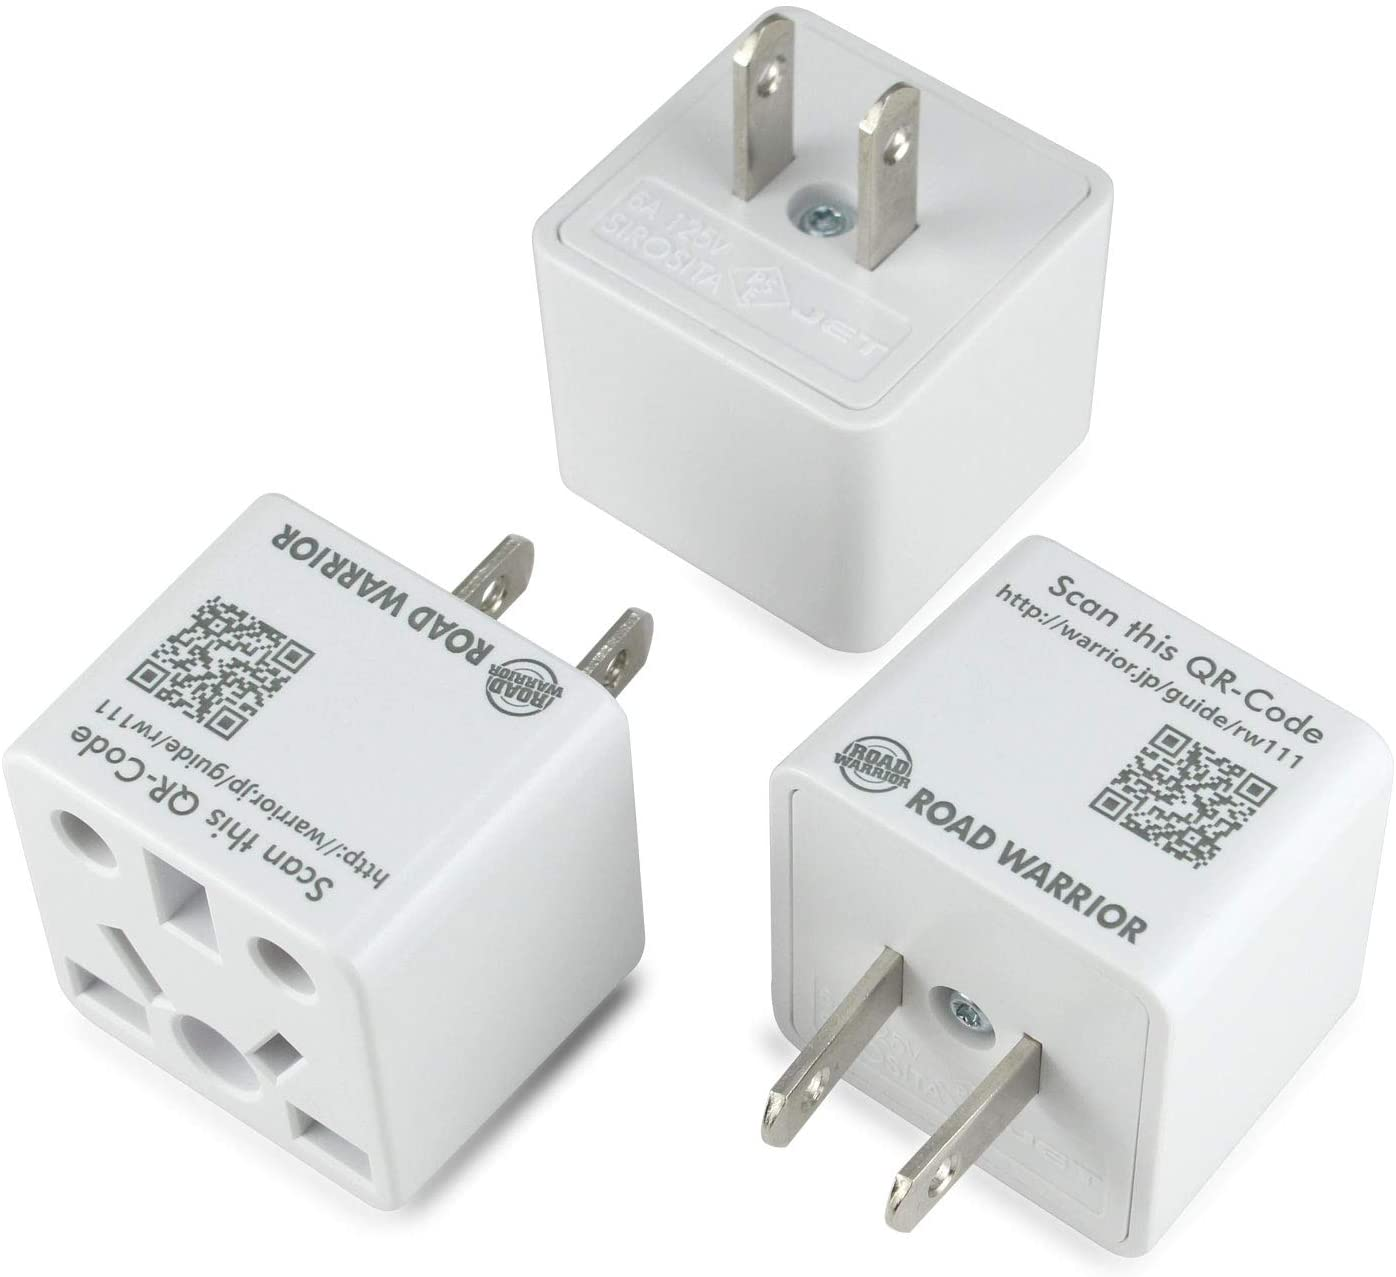 [3 Pack] ROAD WARRIOR US Travel Plug Adapter Euro/UK/China/Australia/India to USA (Type A) 6A - RW111WH-US